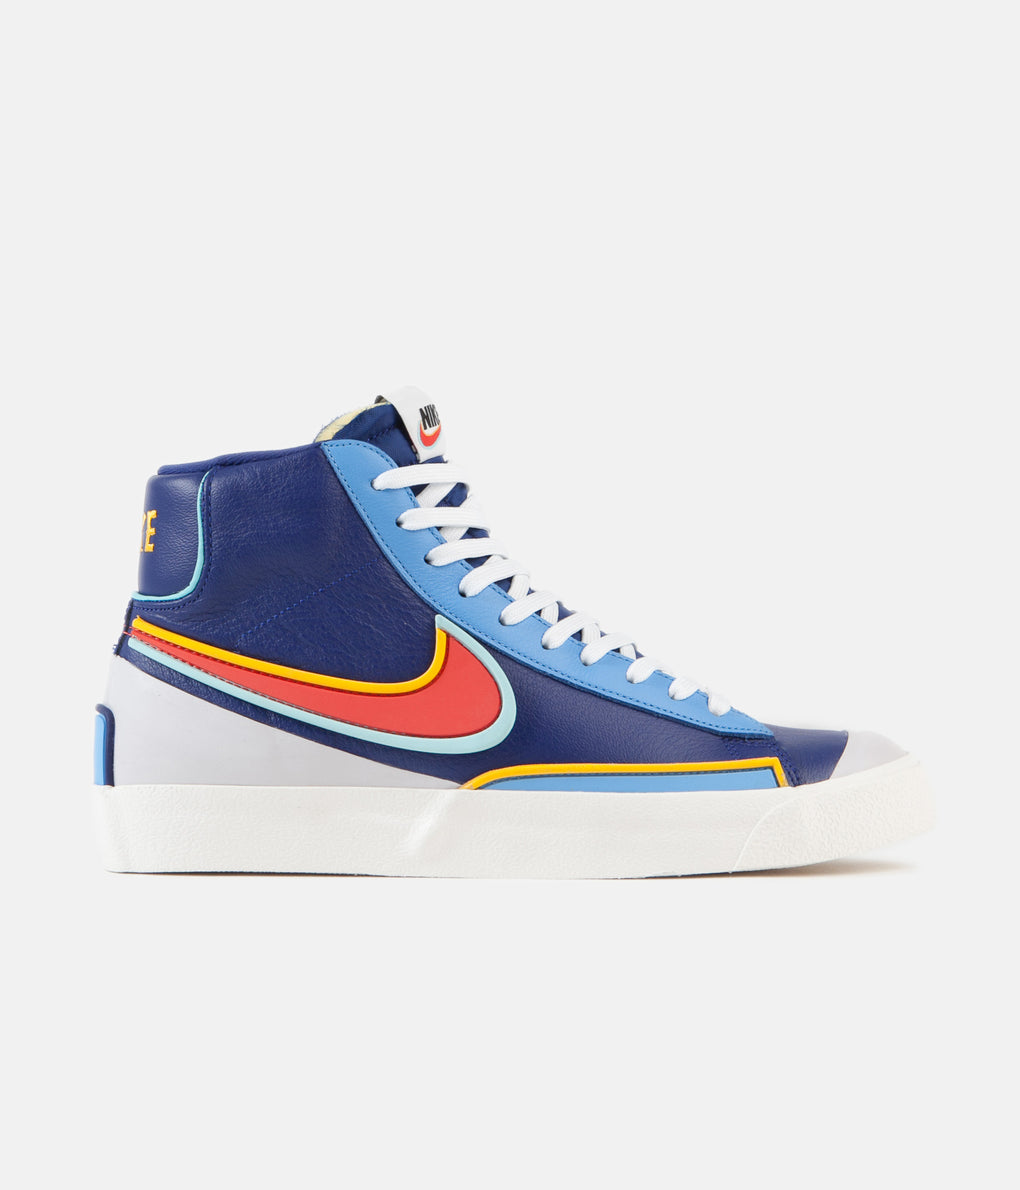 Nike Blazer Mid '77 Infinite Shoes - Deep Royal Blue / Chile Red - Copa